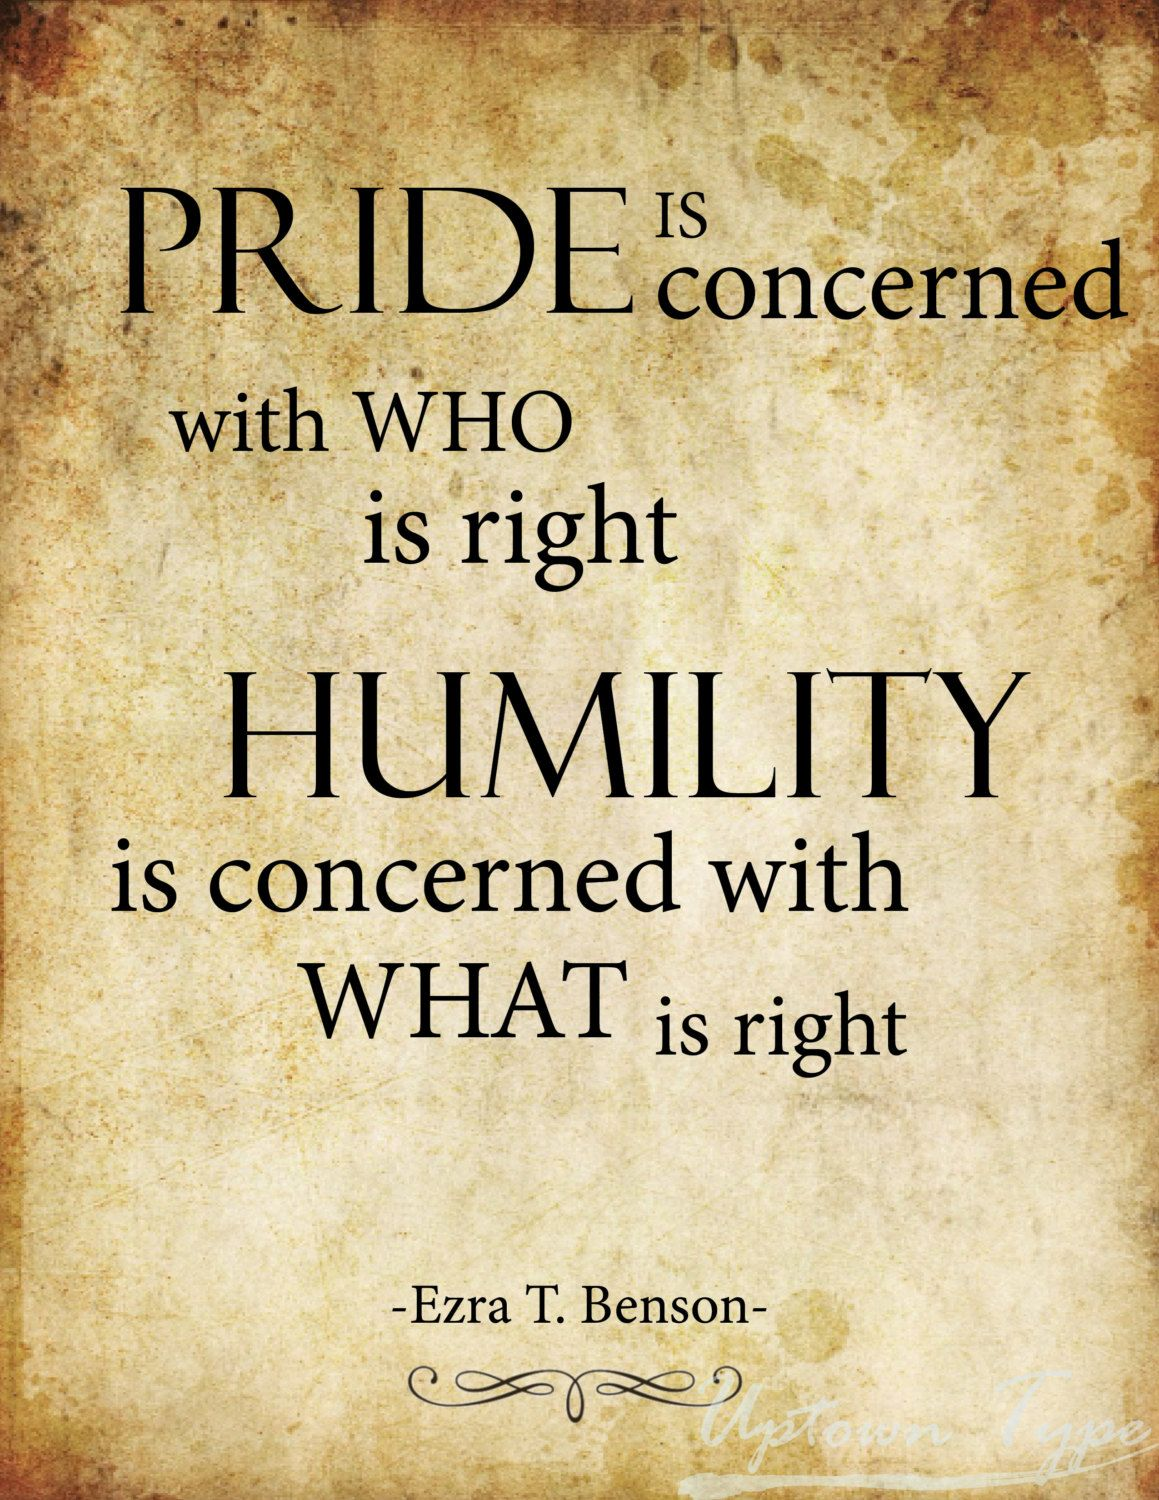 Pride Vs Humility Quote Humility Quotes Pride Quotes Humility